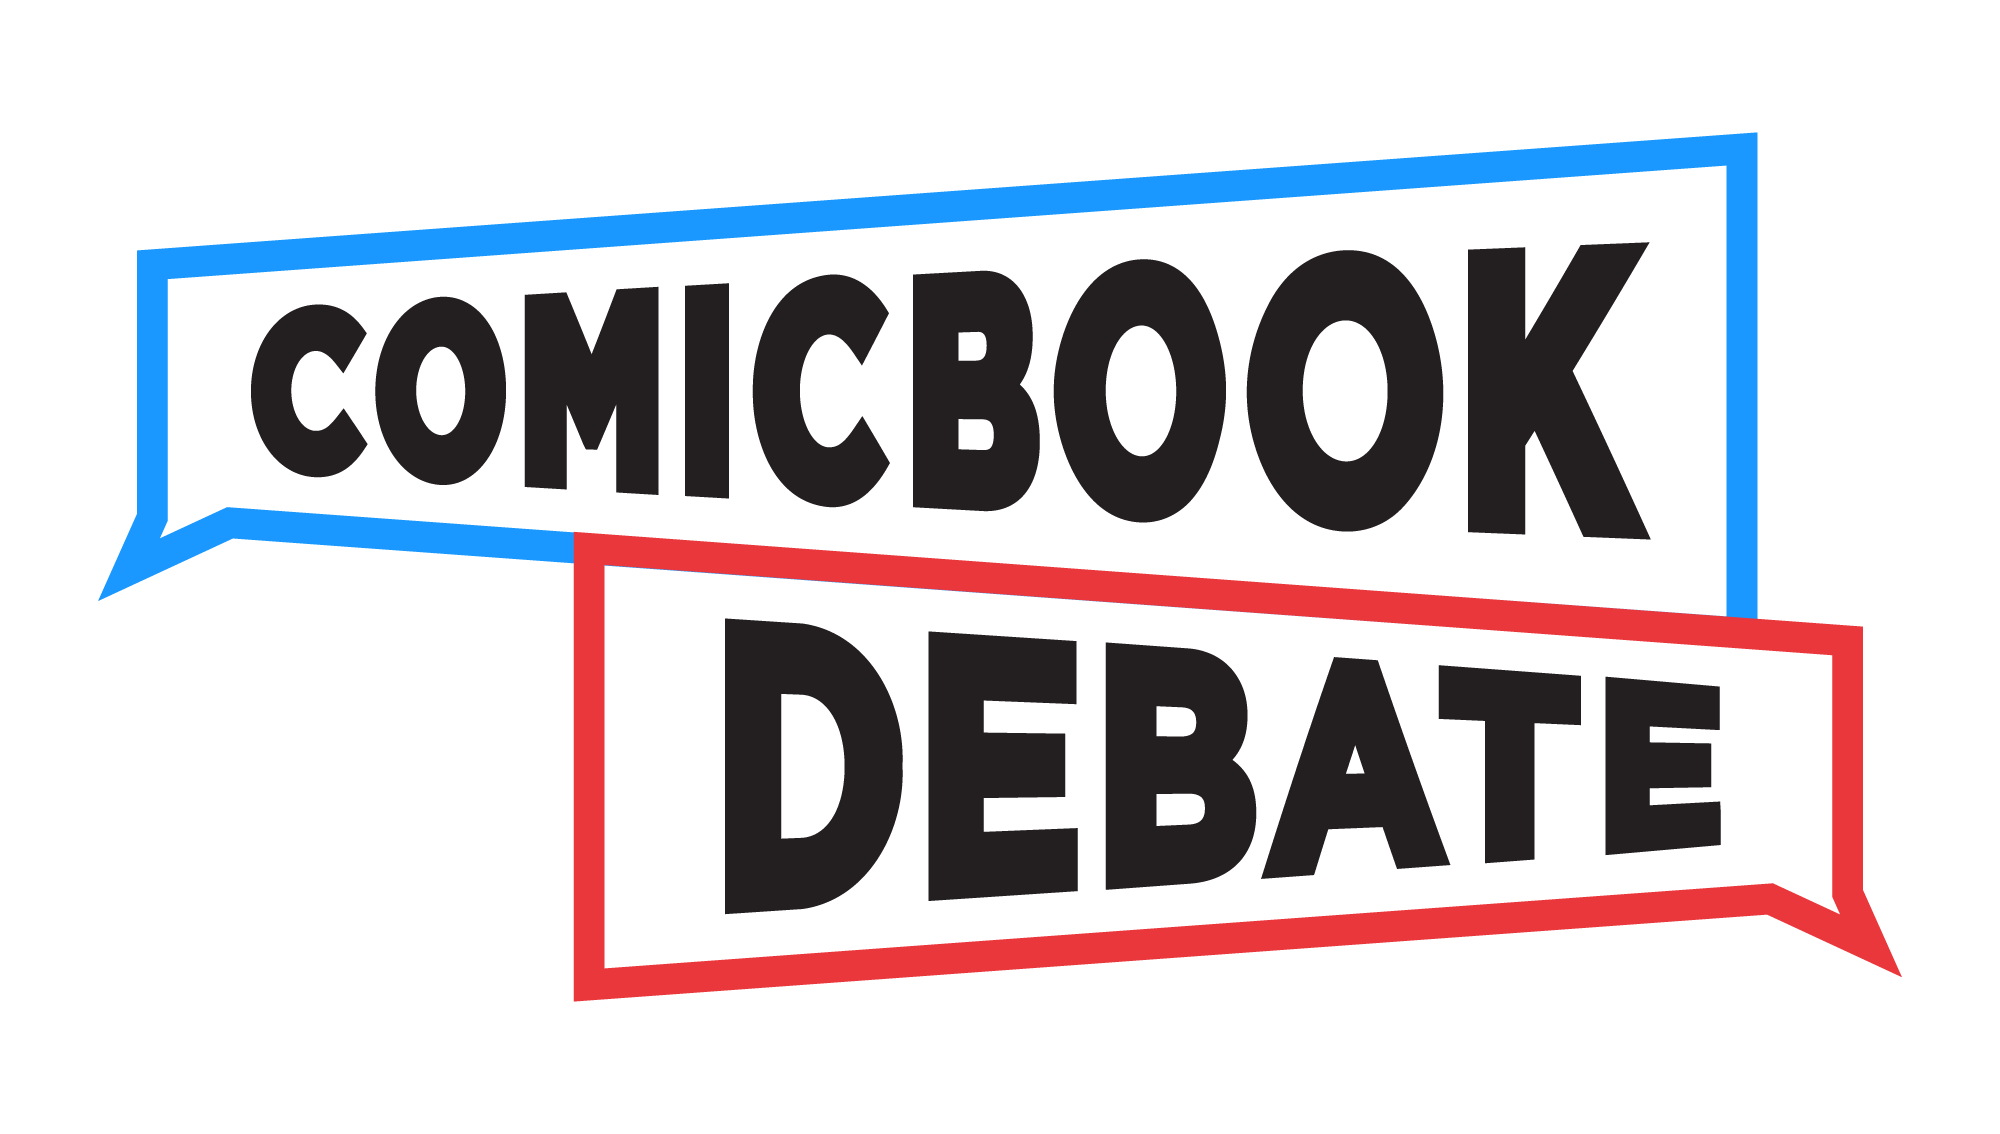 ComicBook Debate